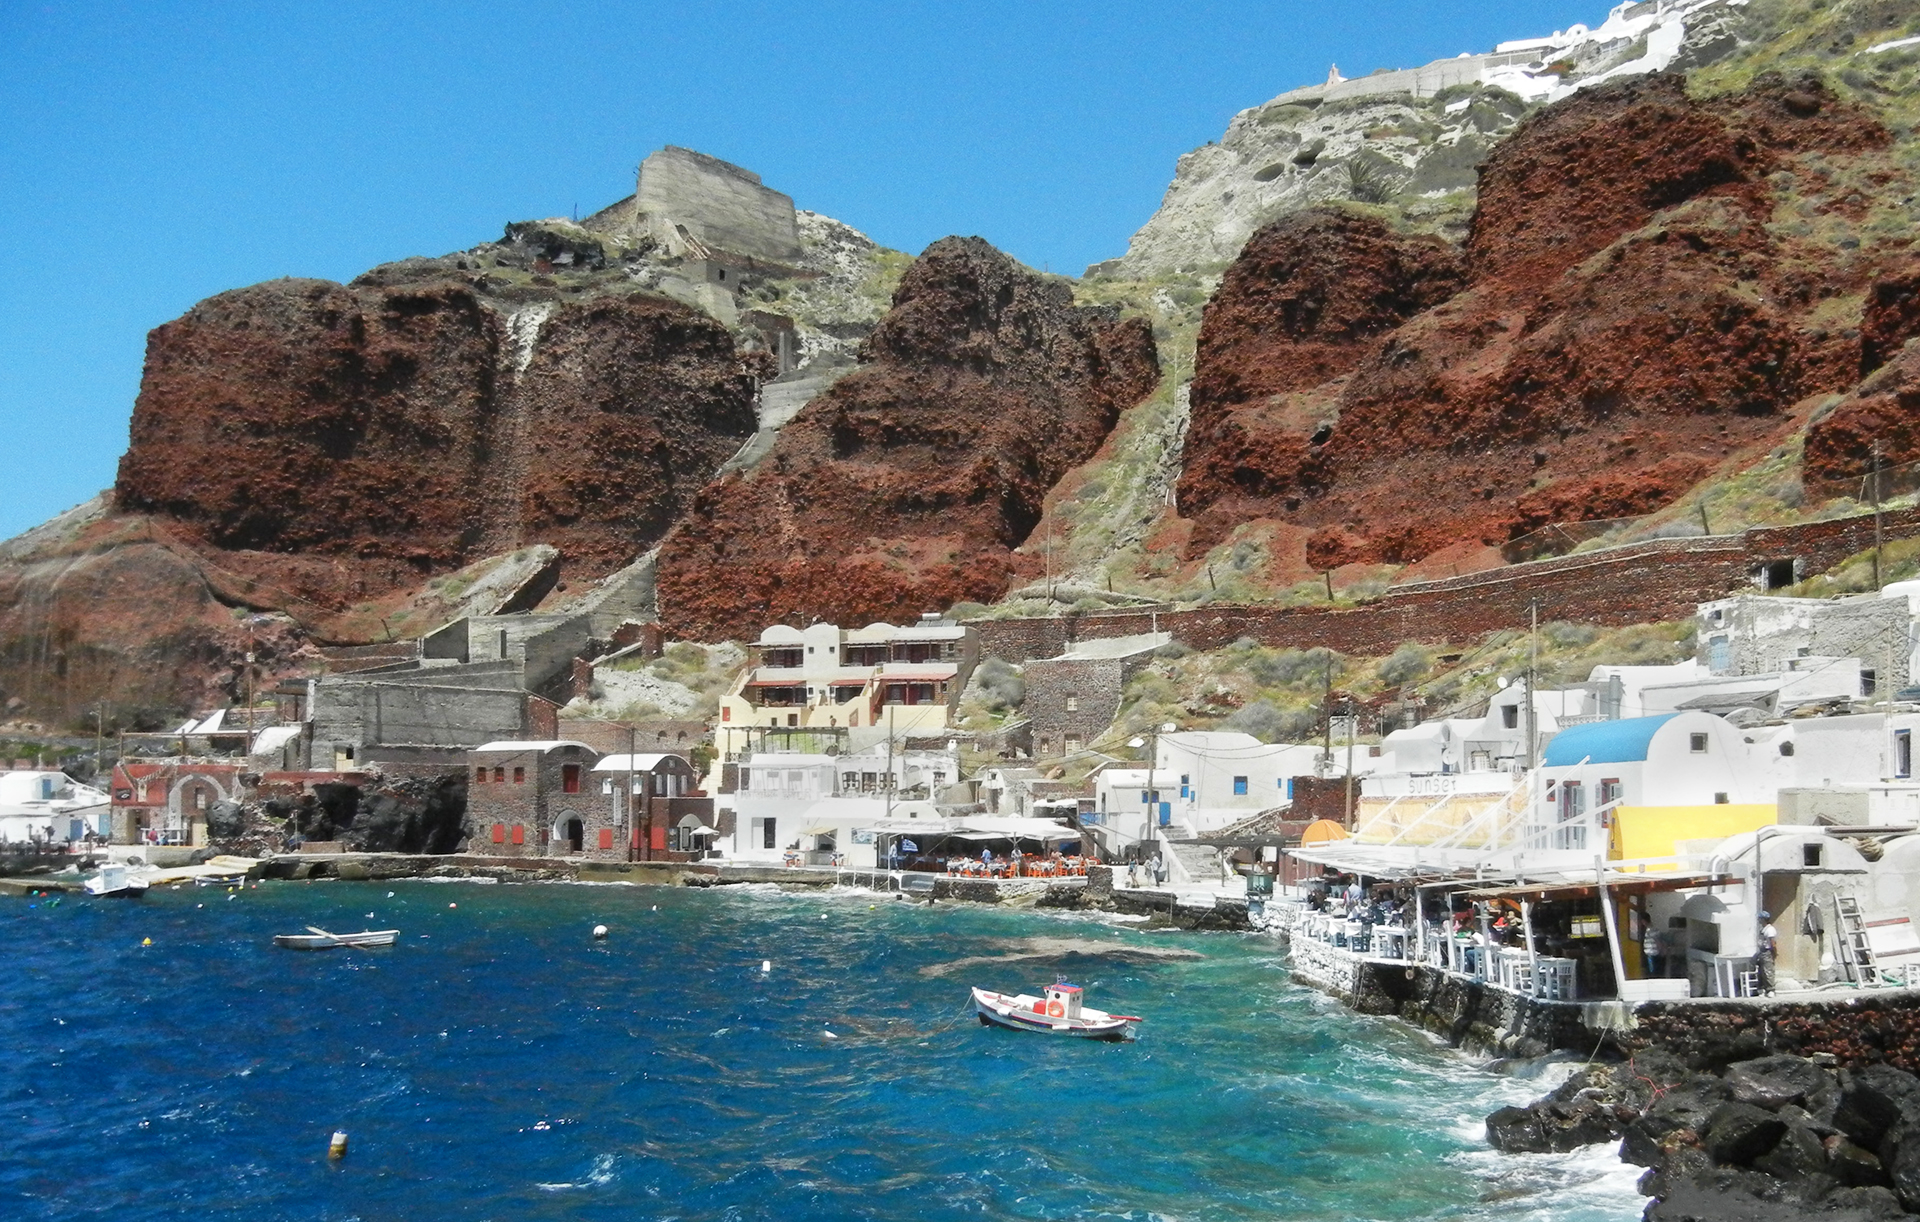 Below the cliffs of Oia on Santorini is the quaint village and harbour of Ammoudi Bay